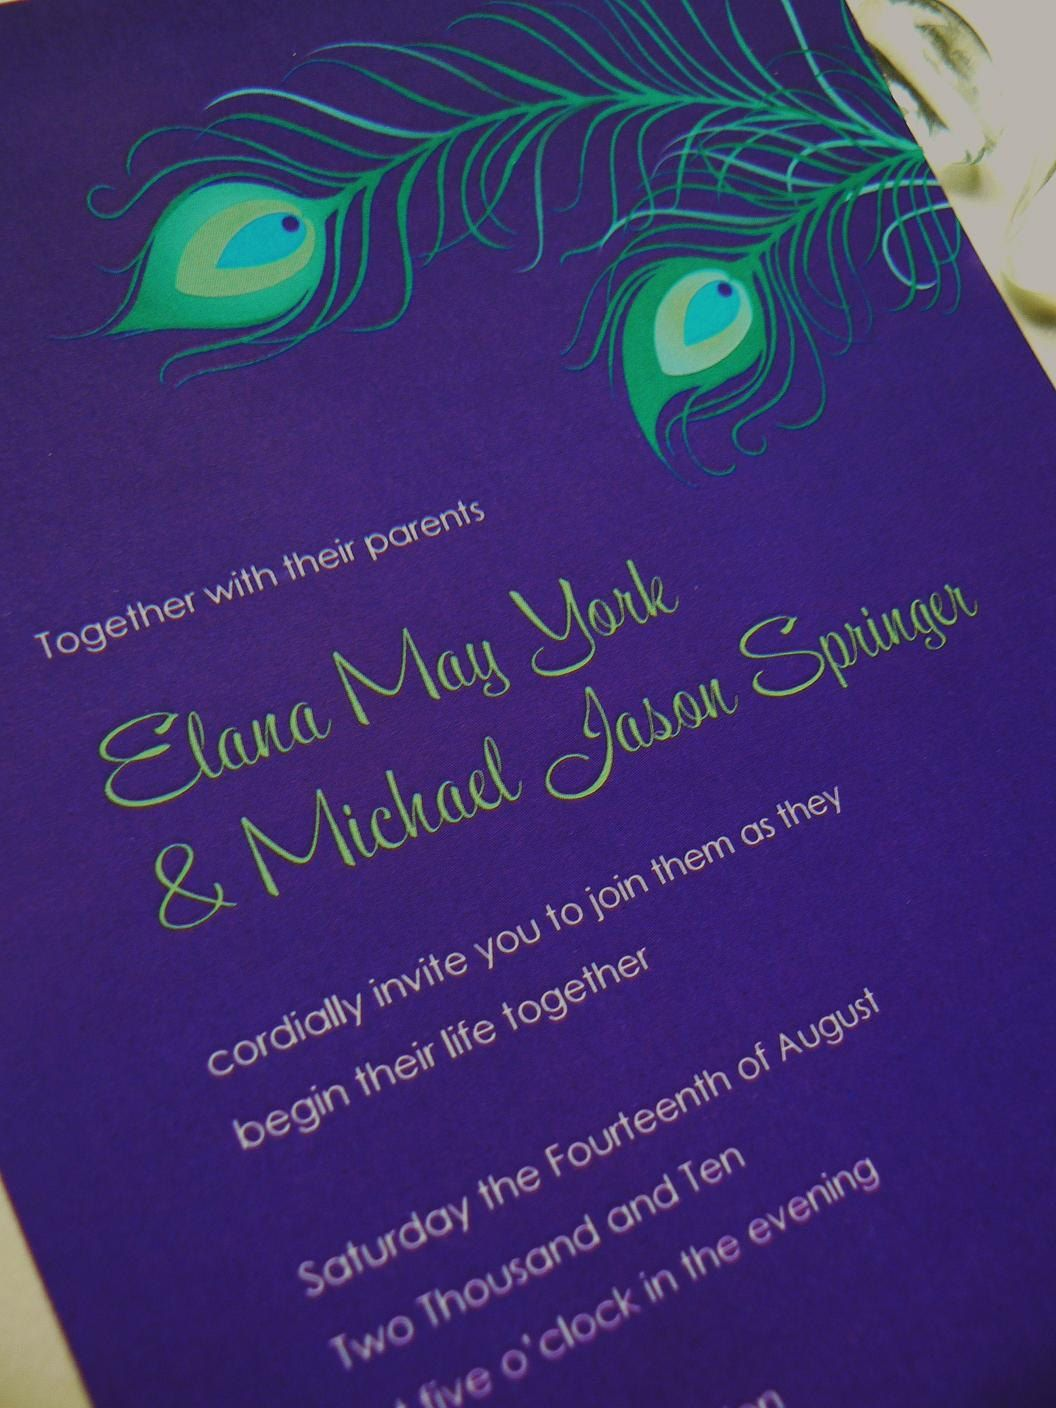 Purple Print Peacock Feather Wedding Invitations. Festive and playful. This plum, purple and soft green invitation set features draped exotic peacock feathers in shades of teal, green and blue. Perfect for a masquerade!    Availbale at www.fanfaredesigns.etsy.com